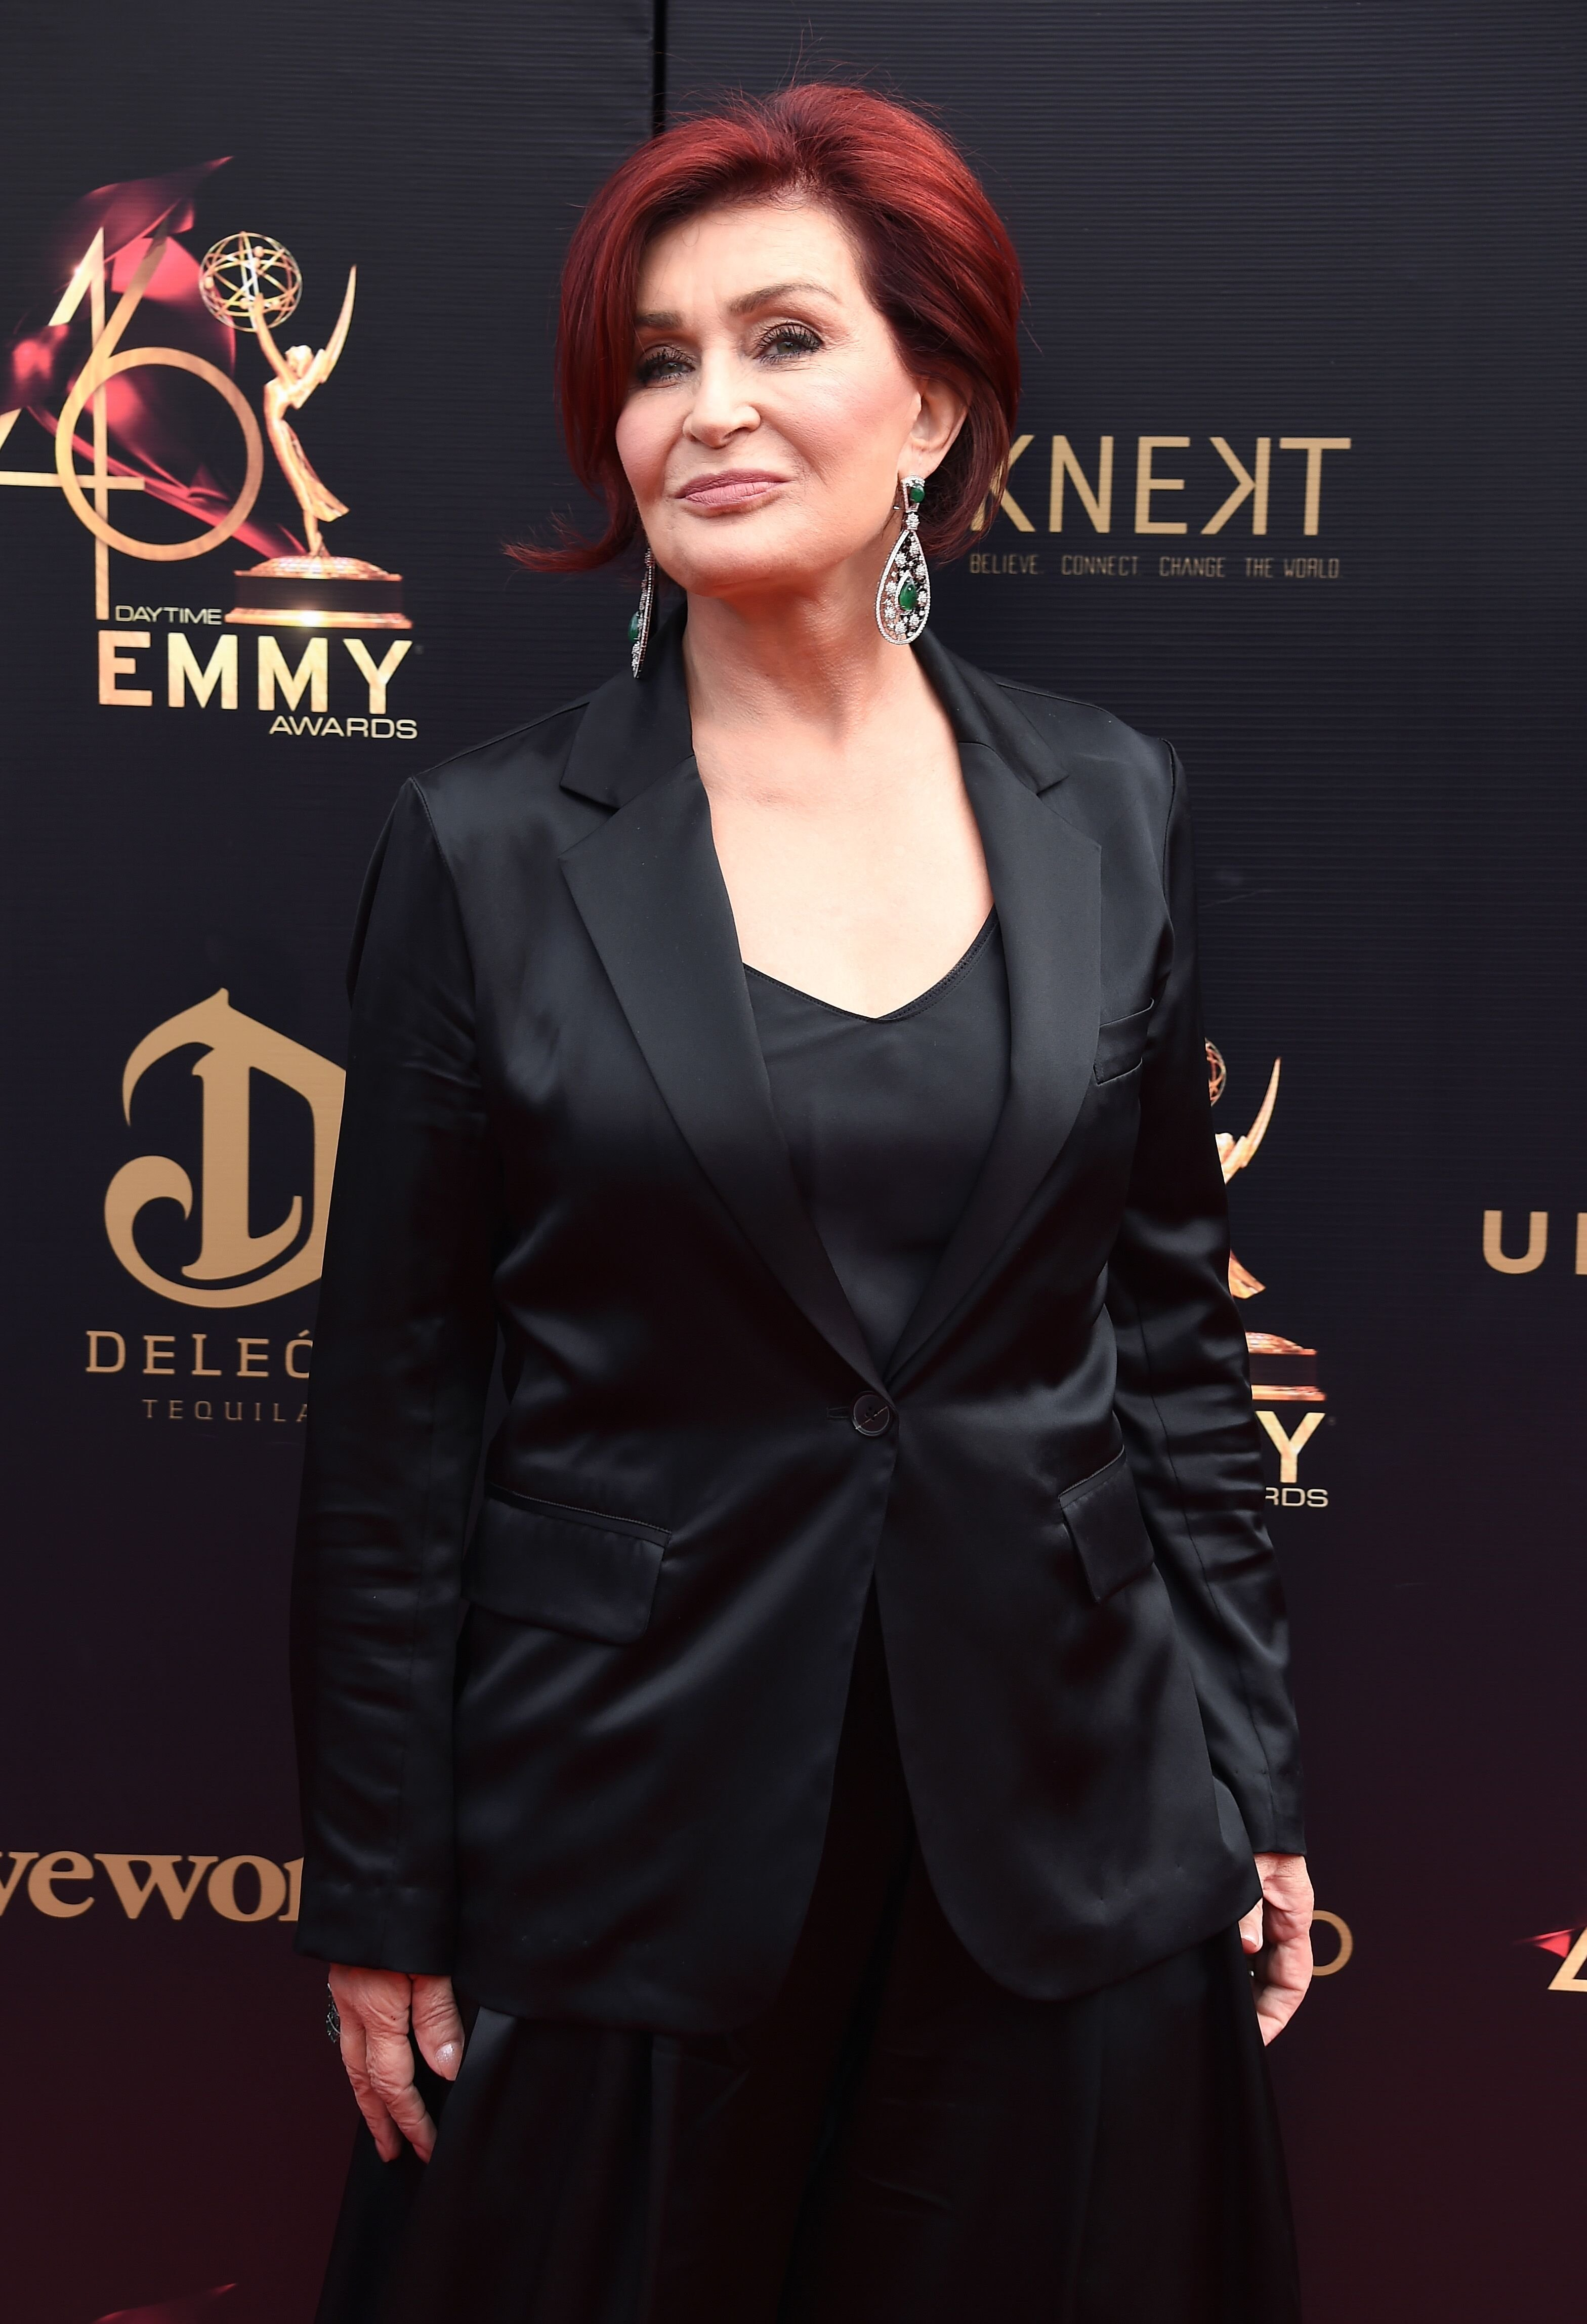 Sharon Osbourne at the 46th annual Daytime Emmy Awards on May 05, 2019 | Source: Getty Images